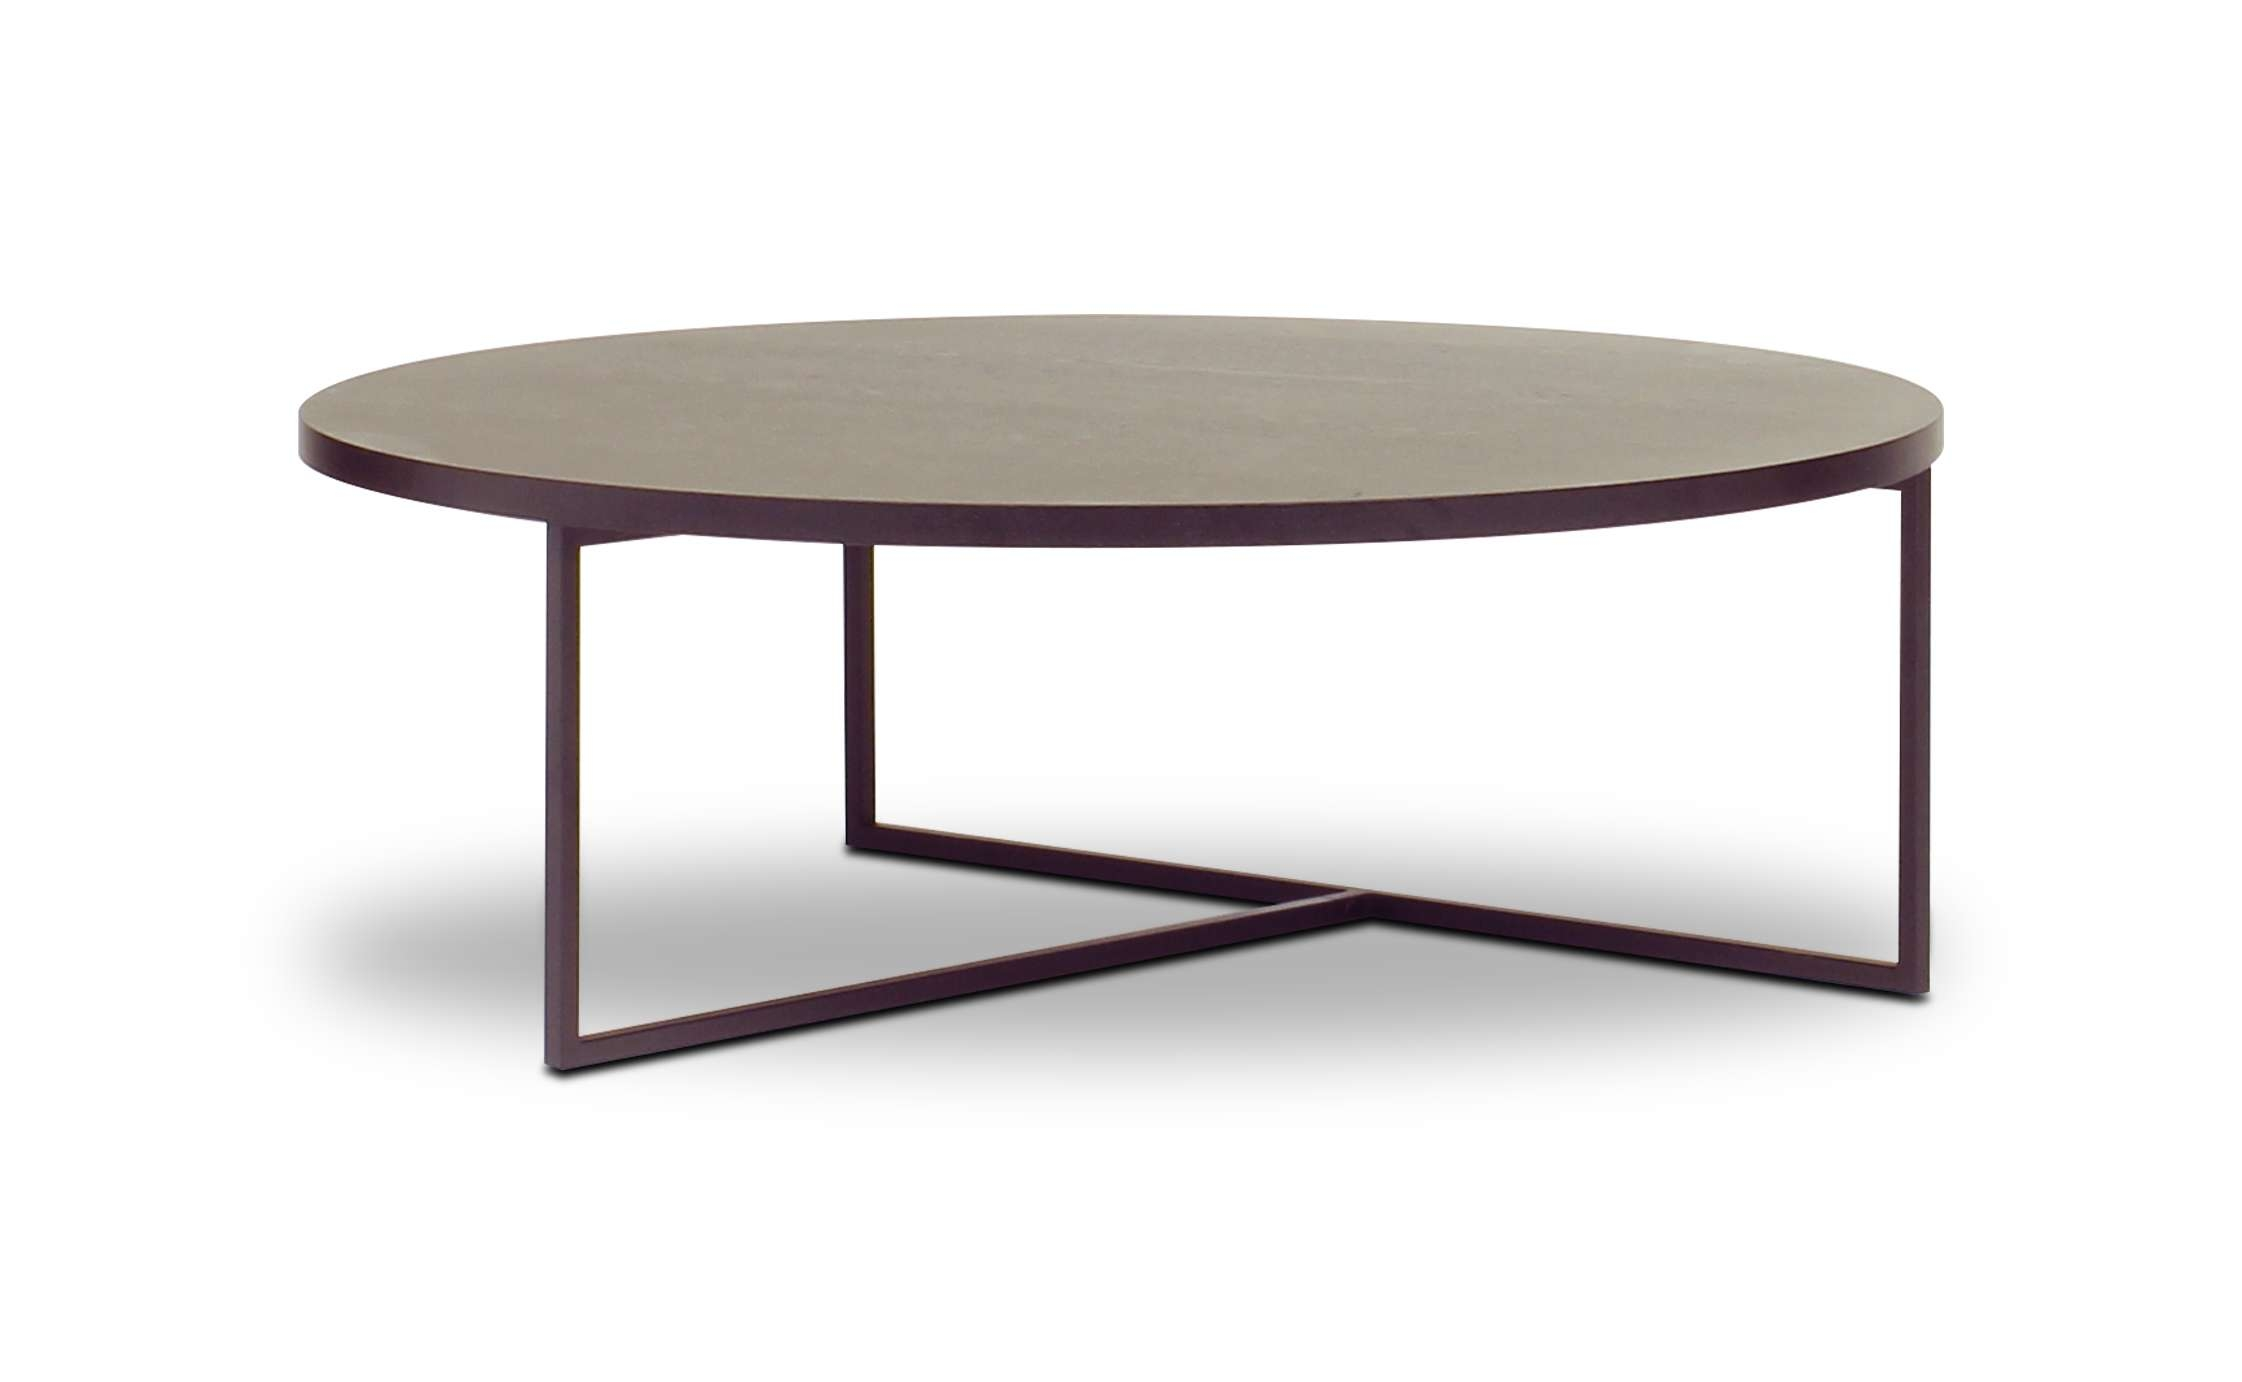 Preferred Metal Round Coffee Tables Within Uncategorized : Metal Round Coffee Table Within Nice Coffee Table (View 16 of 20)